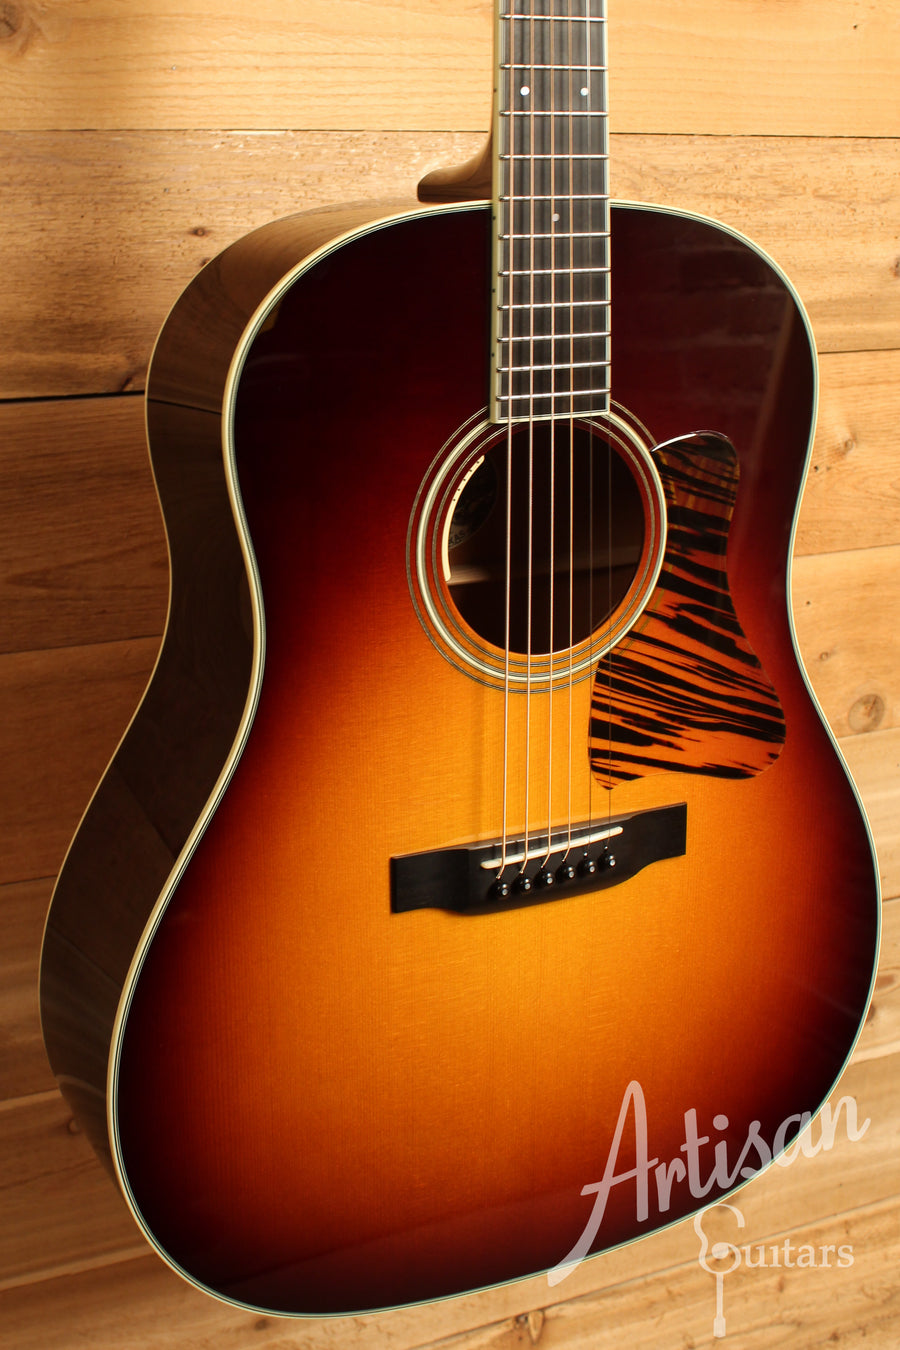 Collings CJ Guitar SS with Sunburst German Spruce top and Mahogany back and sides Pre-Owned 2014 ID-10676 - Artisan Guitars